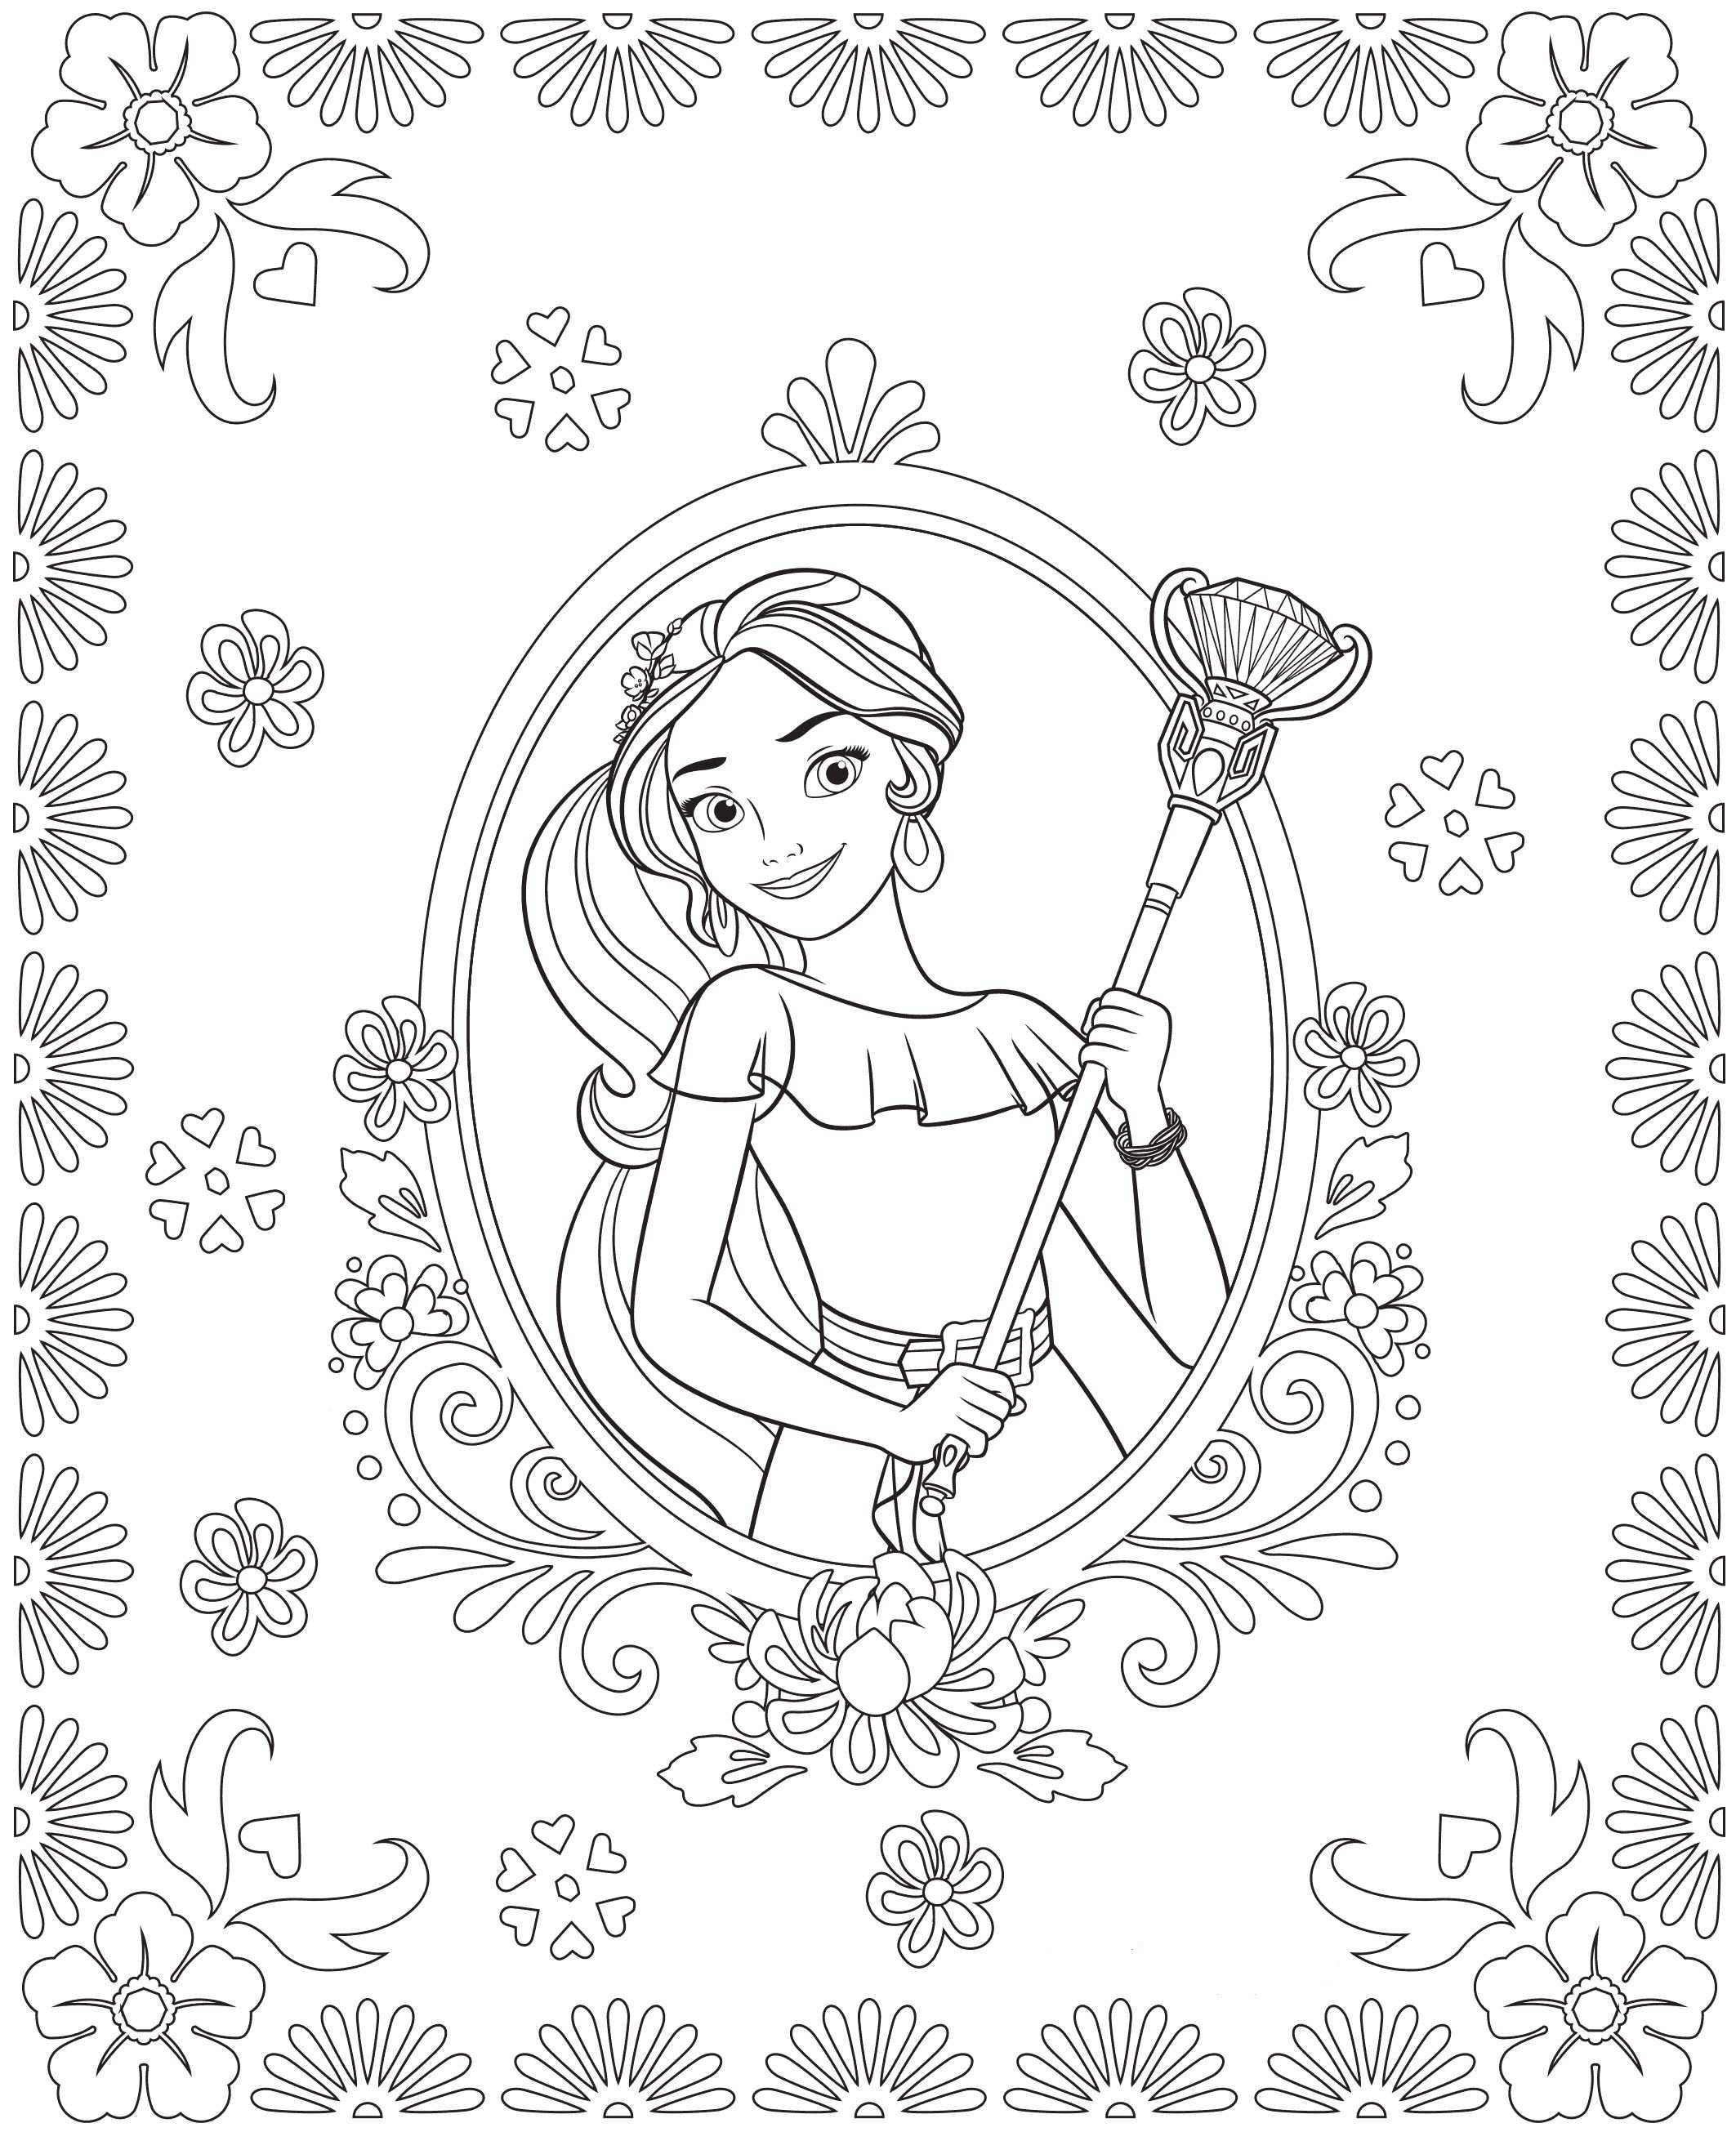 elena of avalor coloring pages to print Collection-28 Schön Ausmalbilder Elena Von Avalor 3-i